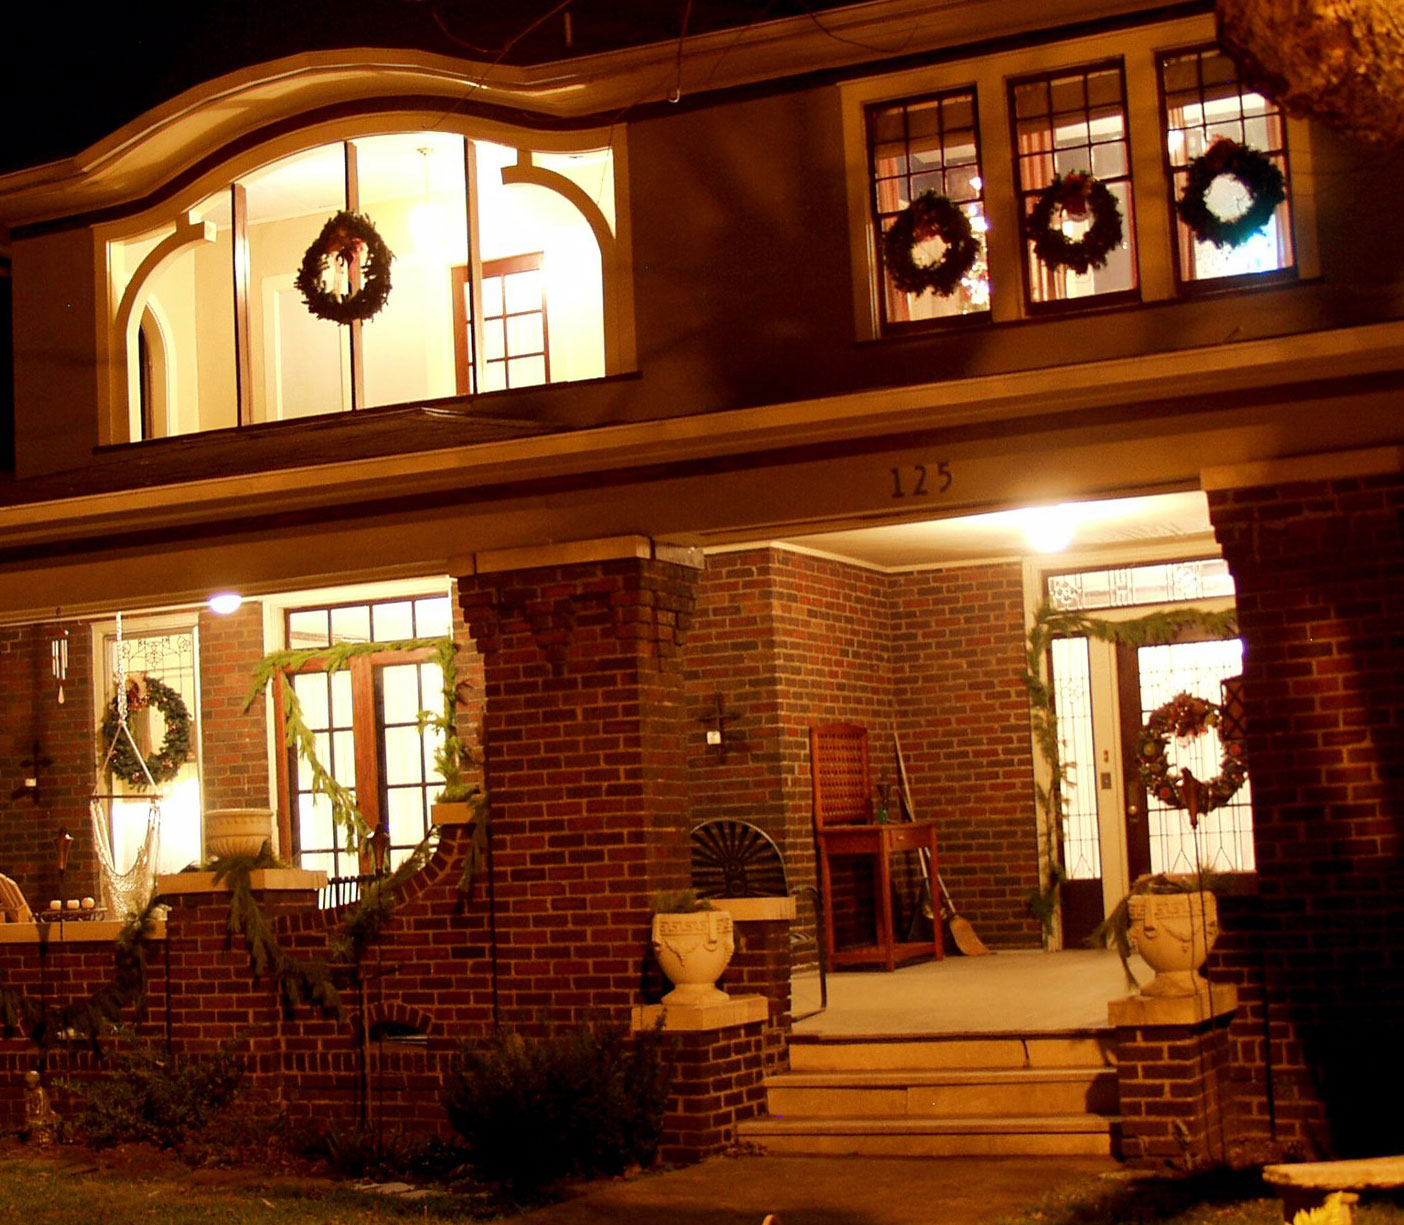 Old North Knoxville Holiday Home Tour <br> December 2 - 3 <br>Old North Knoxville